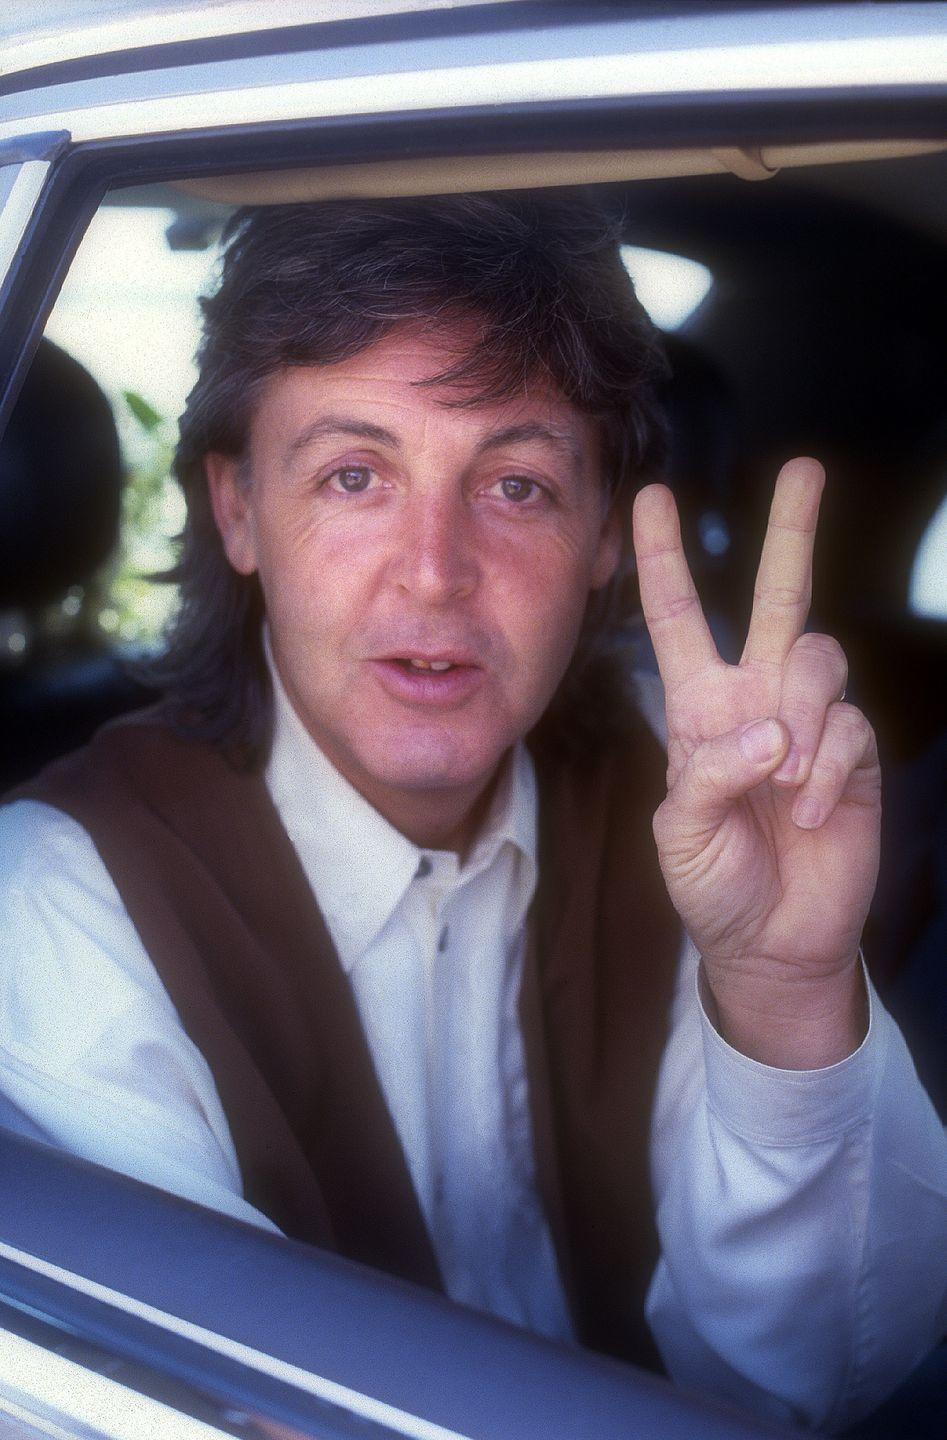 "<p>Paul McCartney does a peace sign in the back of a car in Amsterdam, Netherlands.</p><p>Other celebrity visitors this year:<span class=""redactor-invisible-space""> Diana Ross, David Bowie, Neil Young.<br></span></p>"